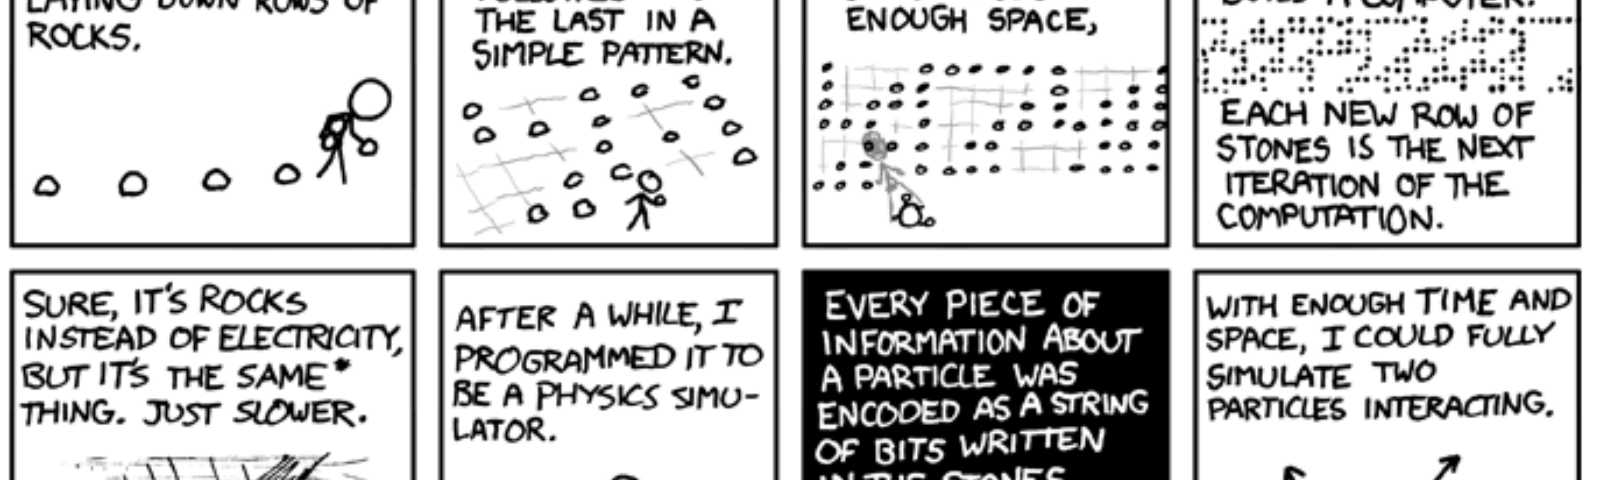 Latest stories and news about Xkcd – Medium